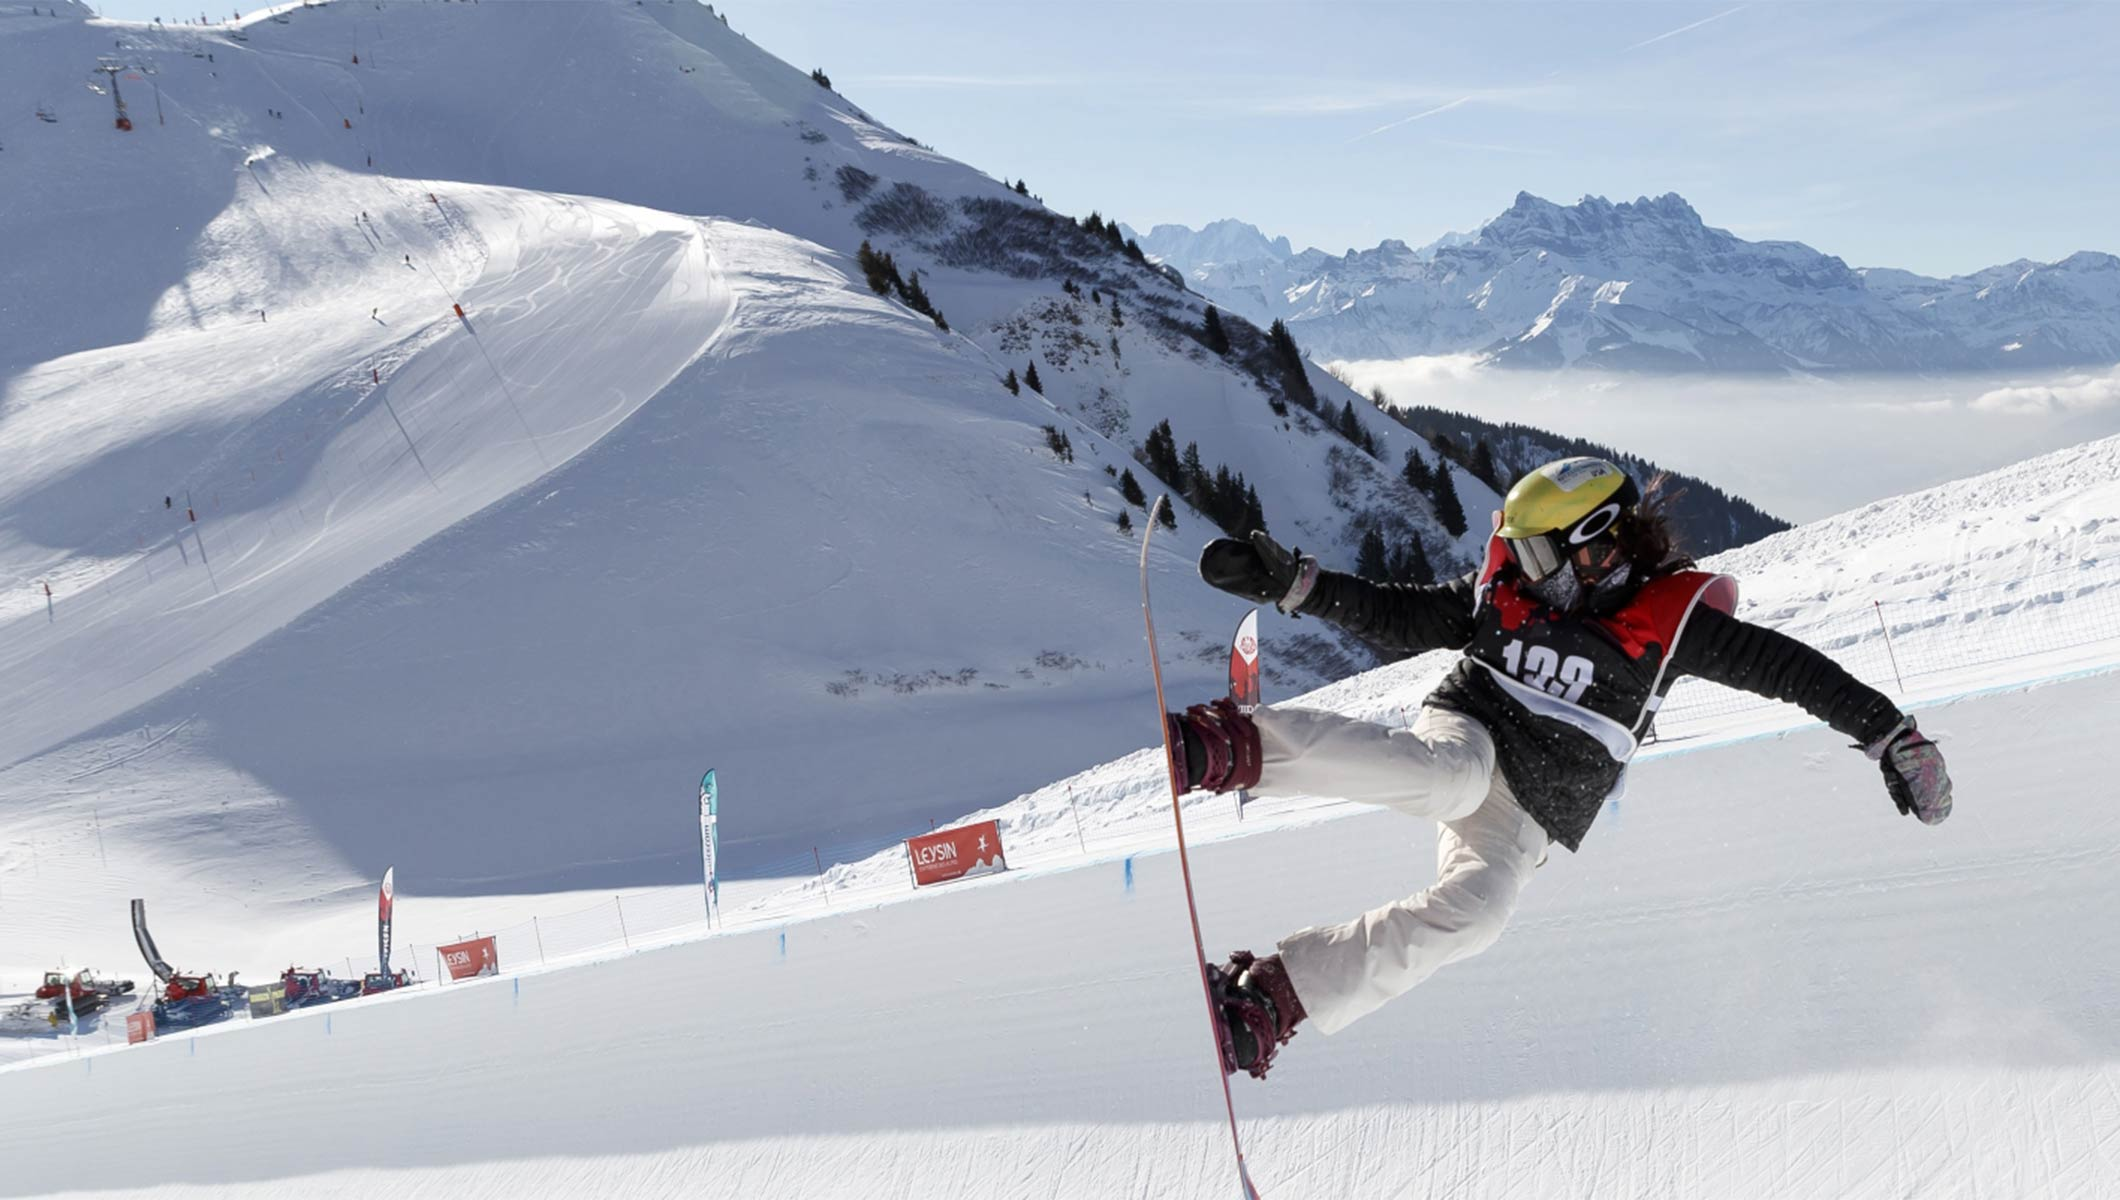 Freestyle Skiing At The 2020 Olympic Winter Games.Lausanne 2020 Competition Schedule Unveiled Olympic News